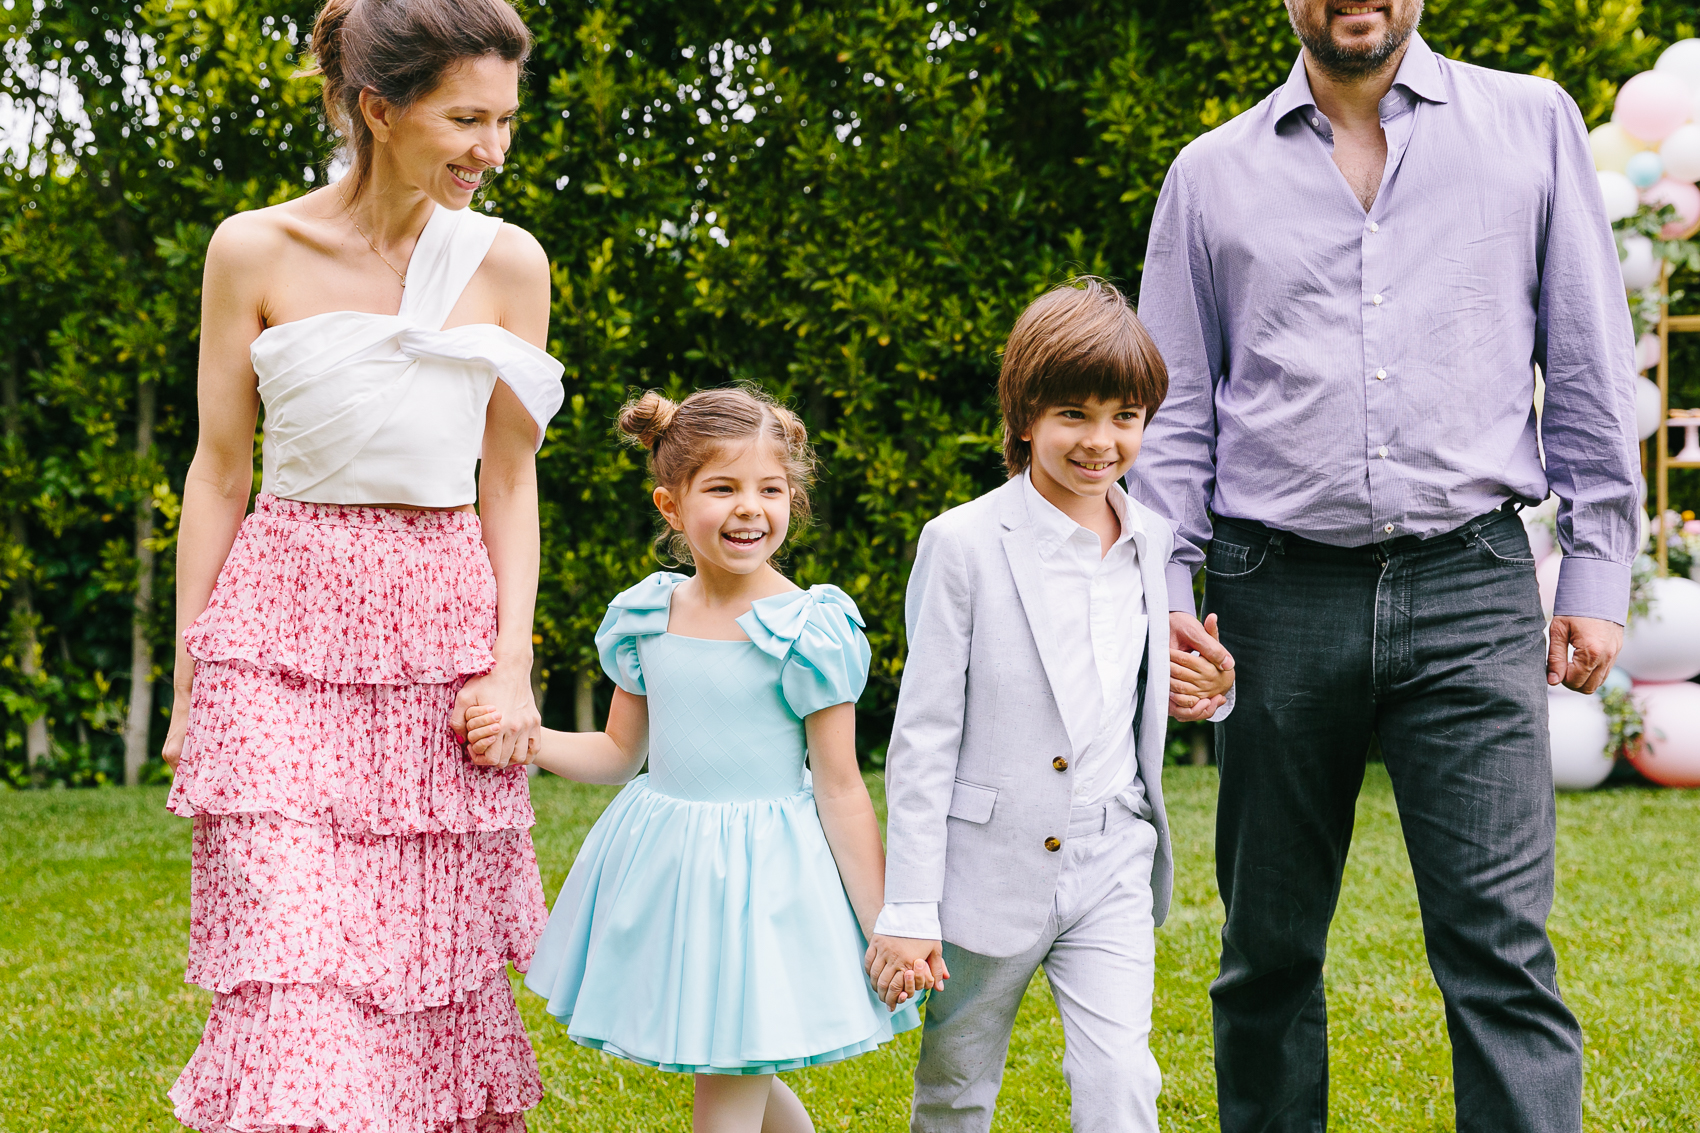 Los_Angeles_Family_Photographer_Luxury_Childrens_Party_Beverly_Hills_Unicorn_Birthday_Party-0441.jpg